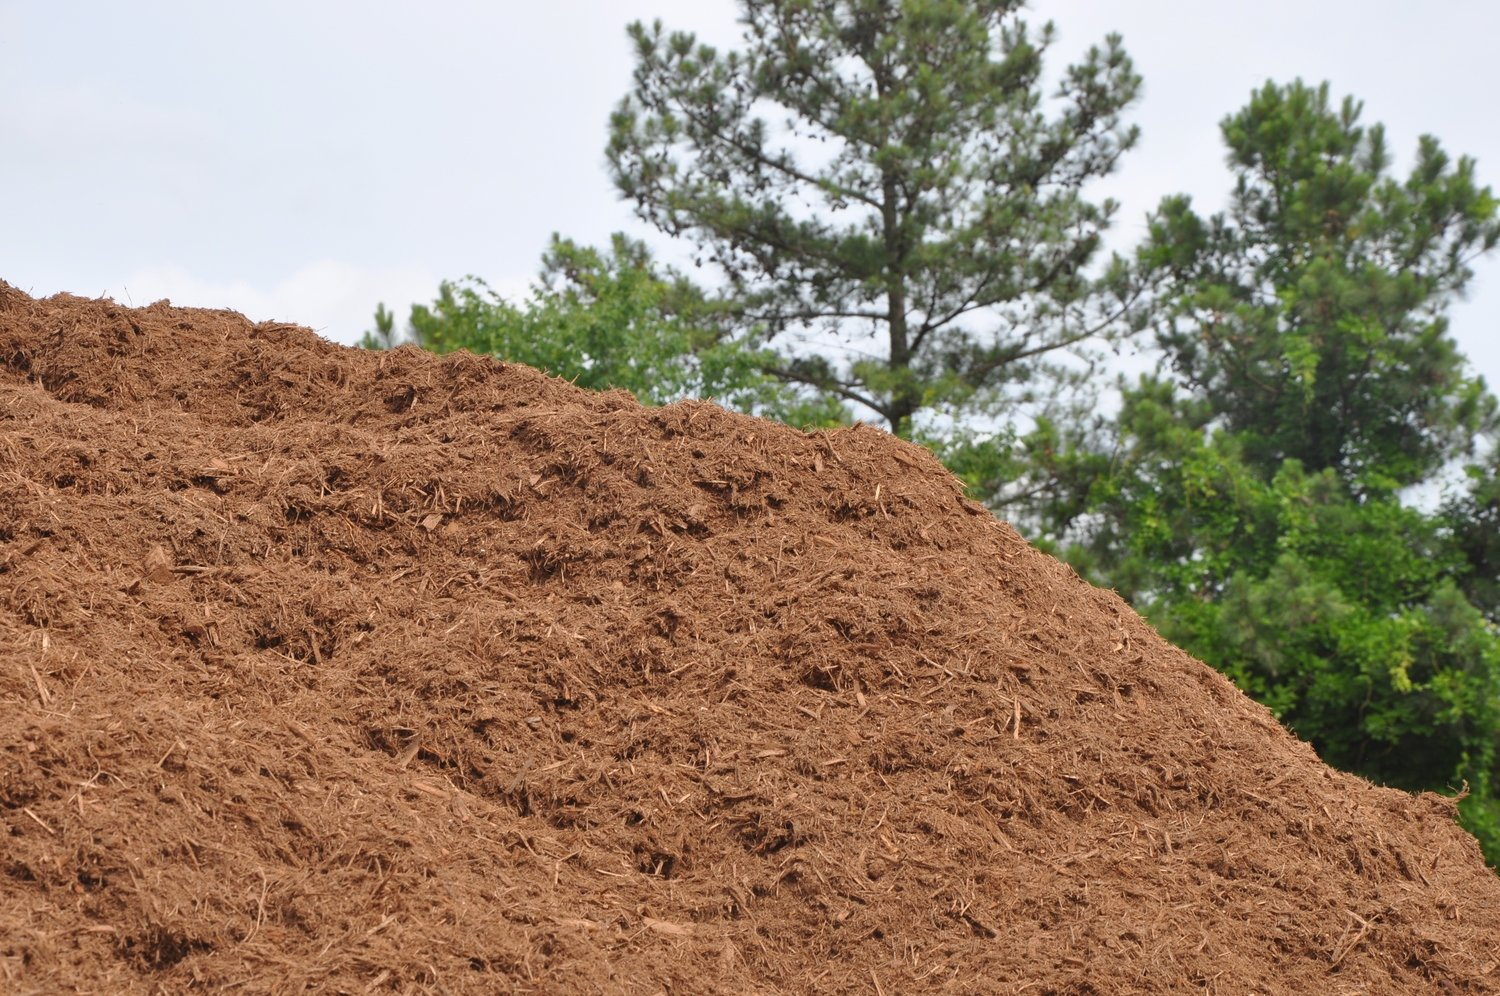 Triple Shredded HARDWOOD Bark Mulch (Color Varies Based on Age of Bark)